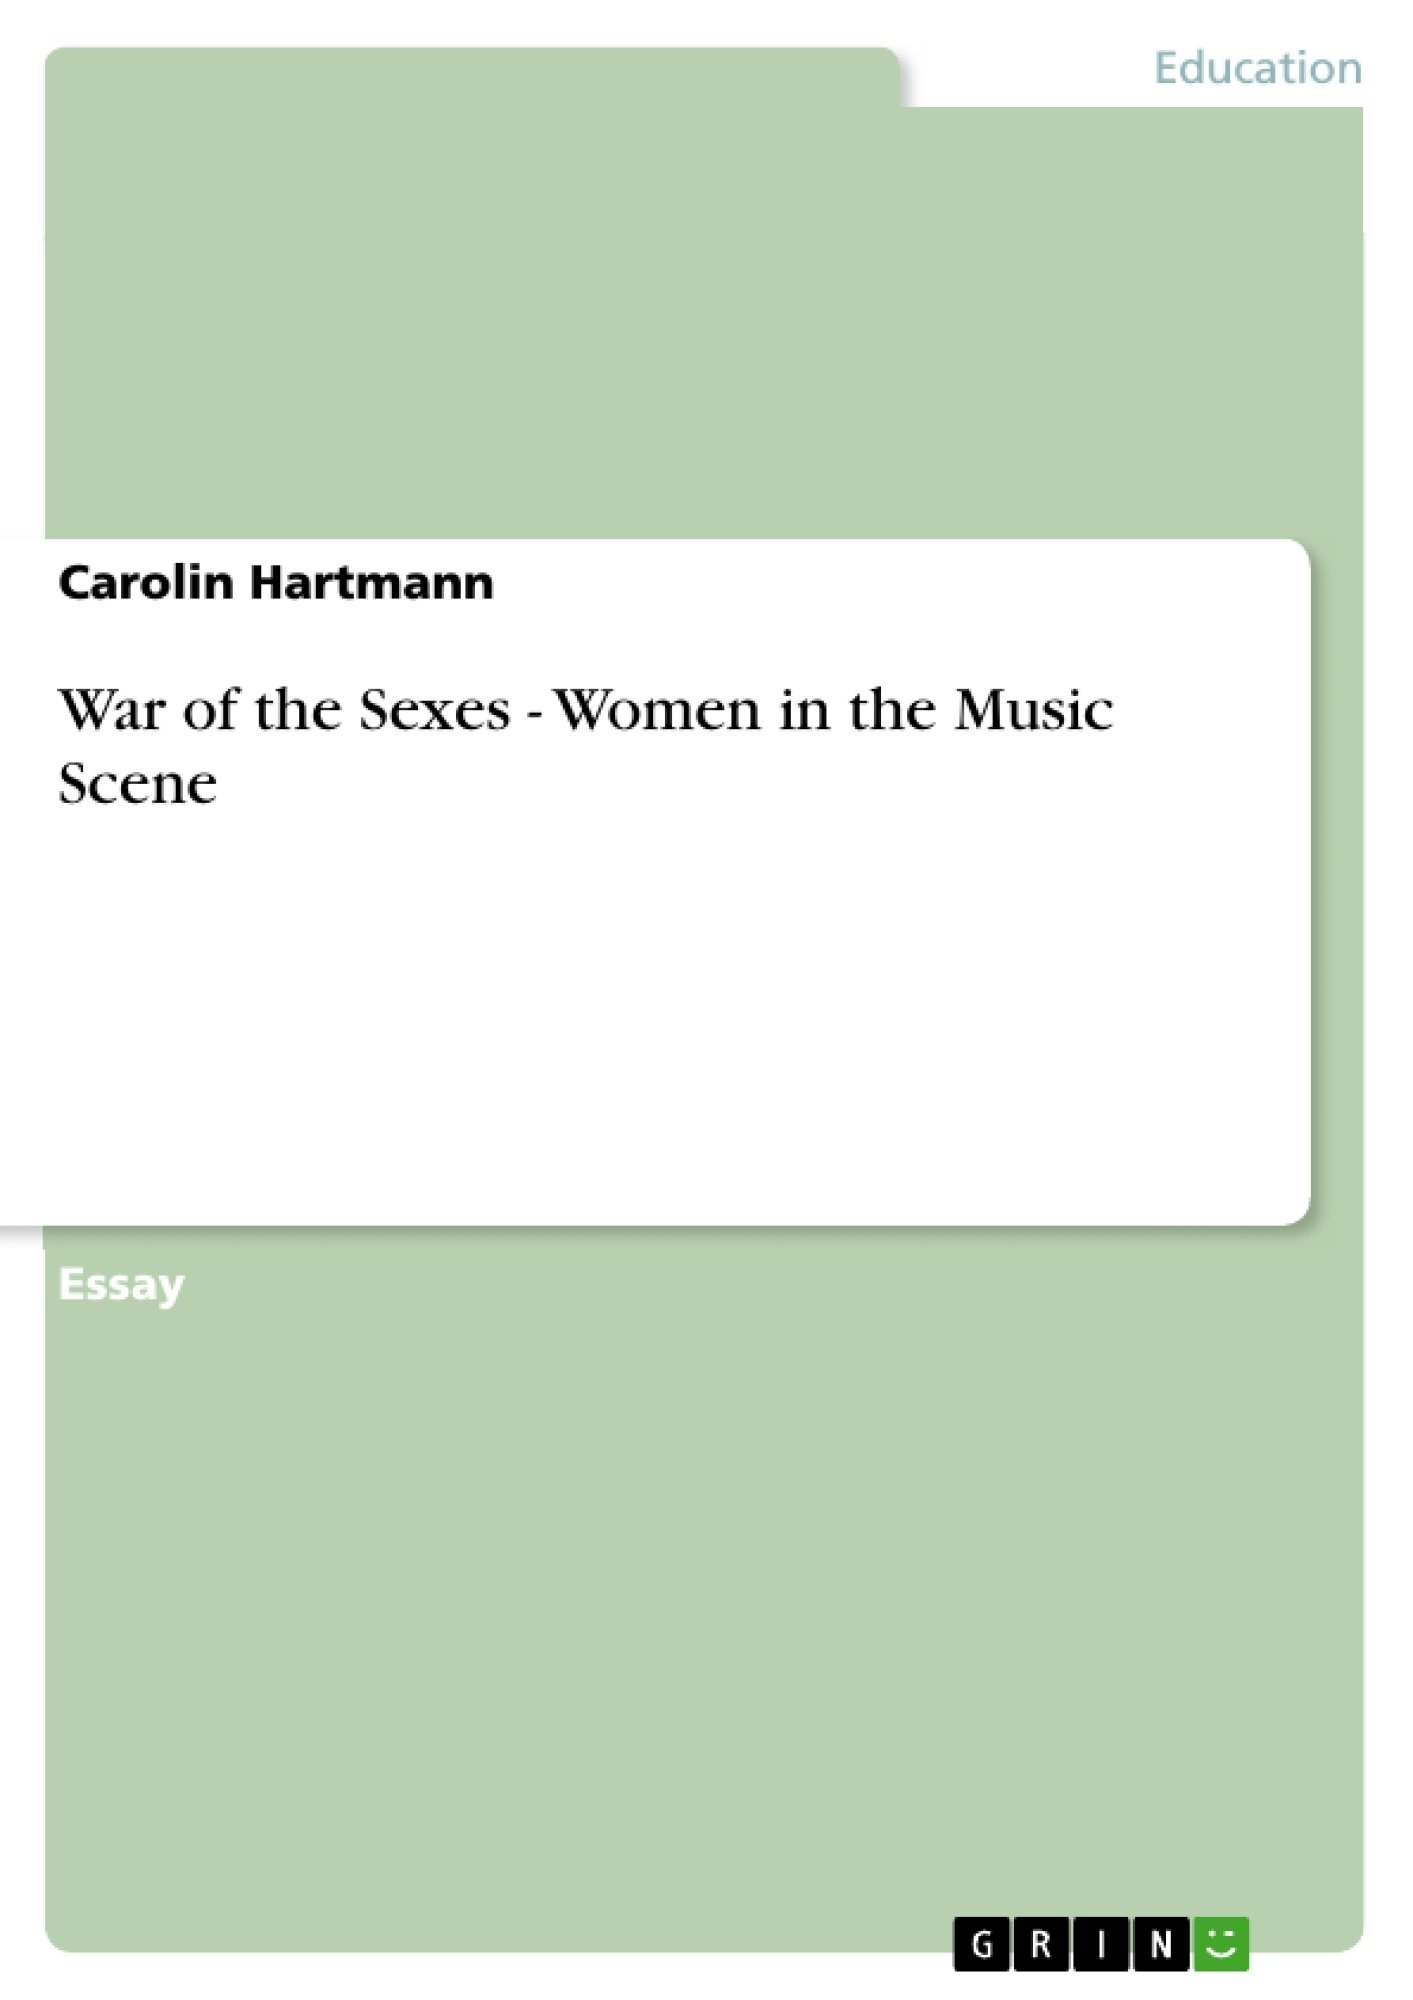 Title: War of the Sexes - Women in the Music Scene